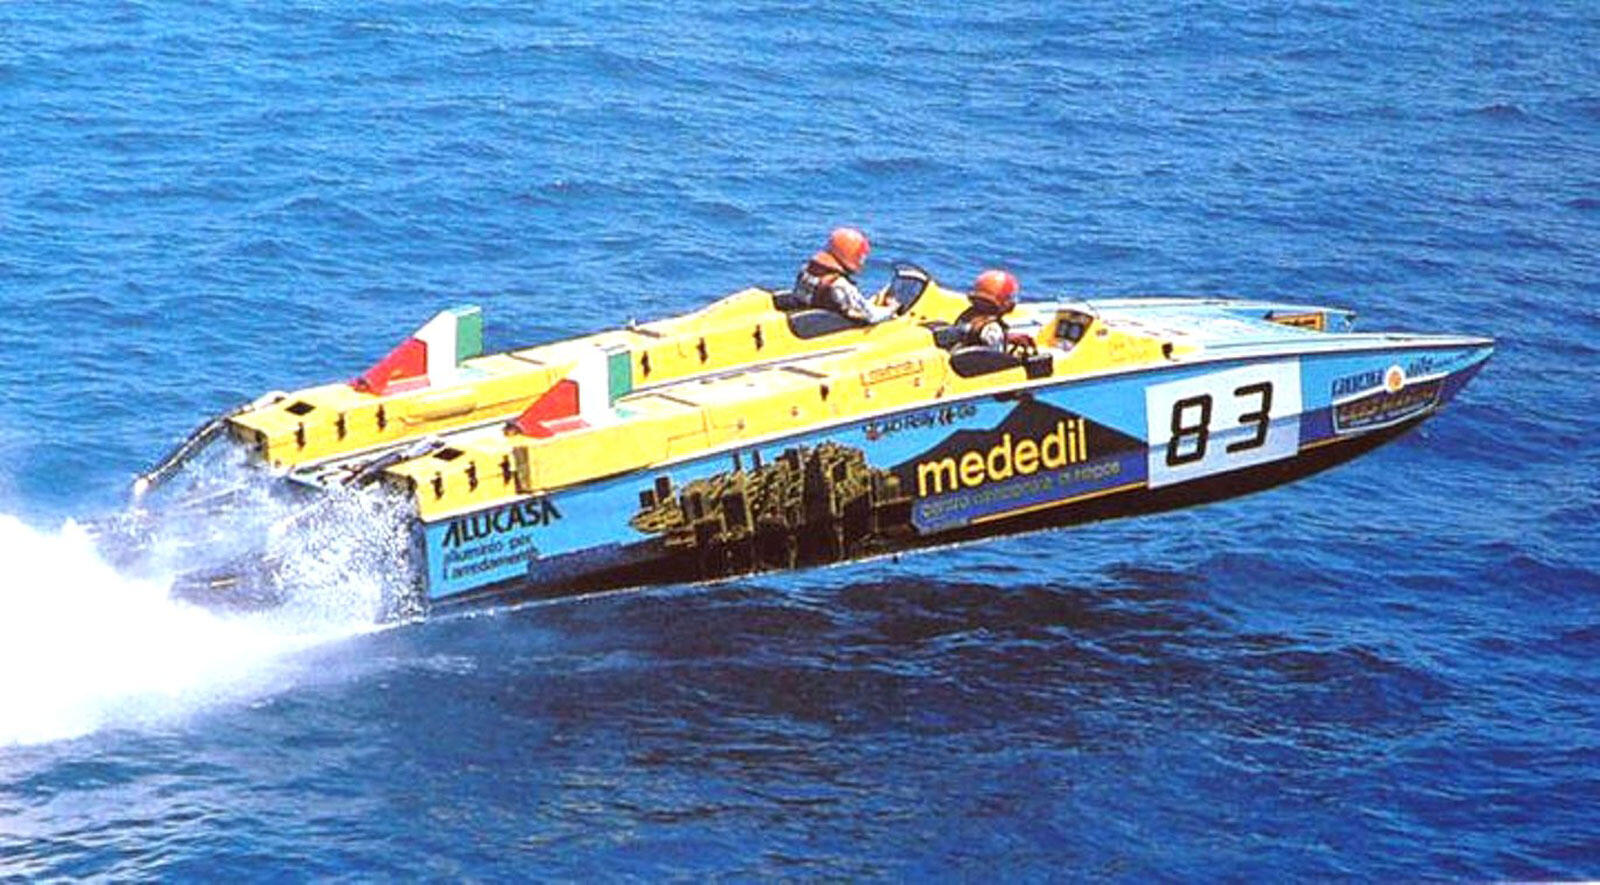 Full throttle with a Neapolitan Legend in Offshore powerboat